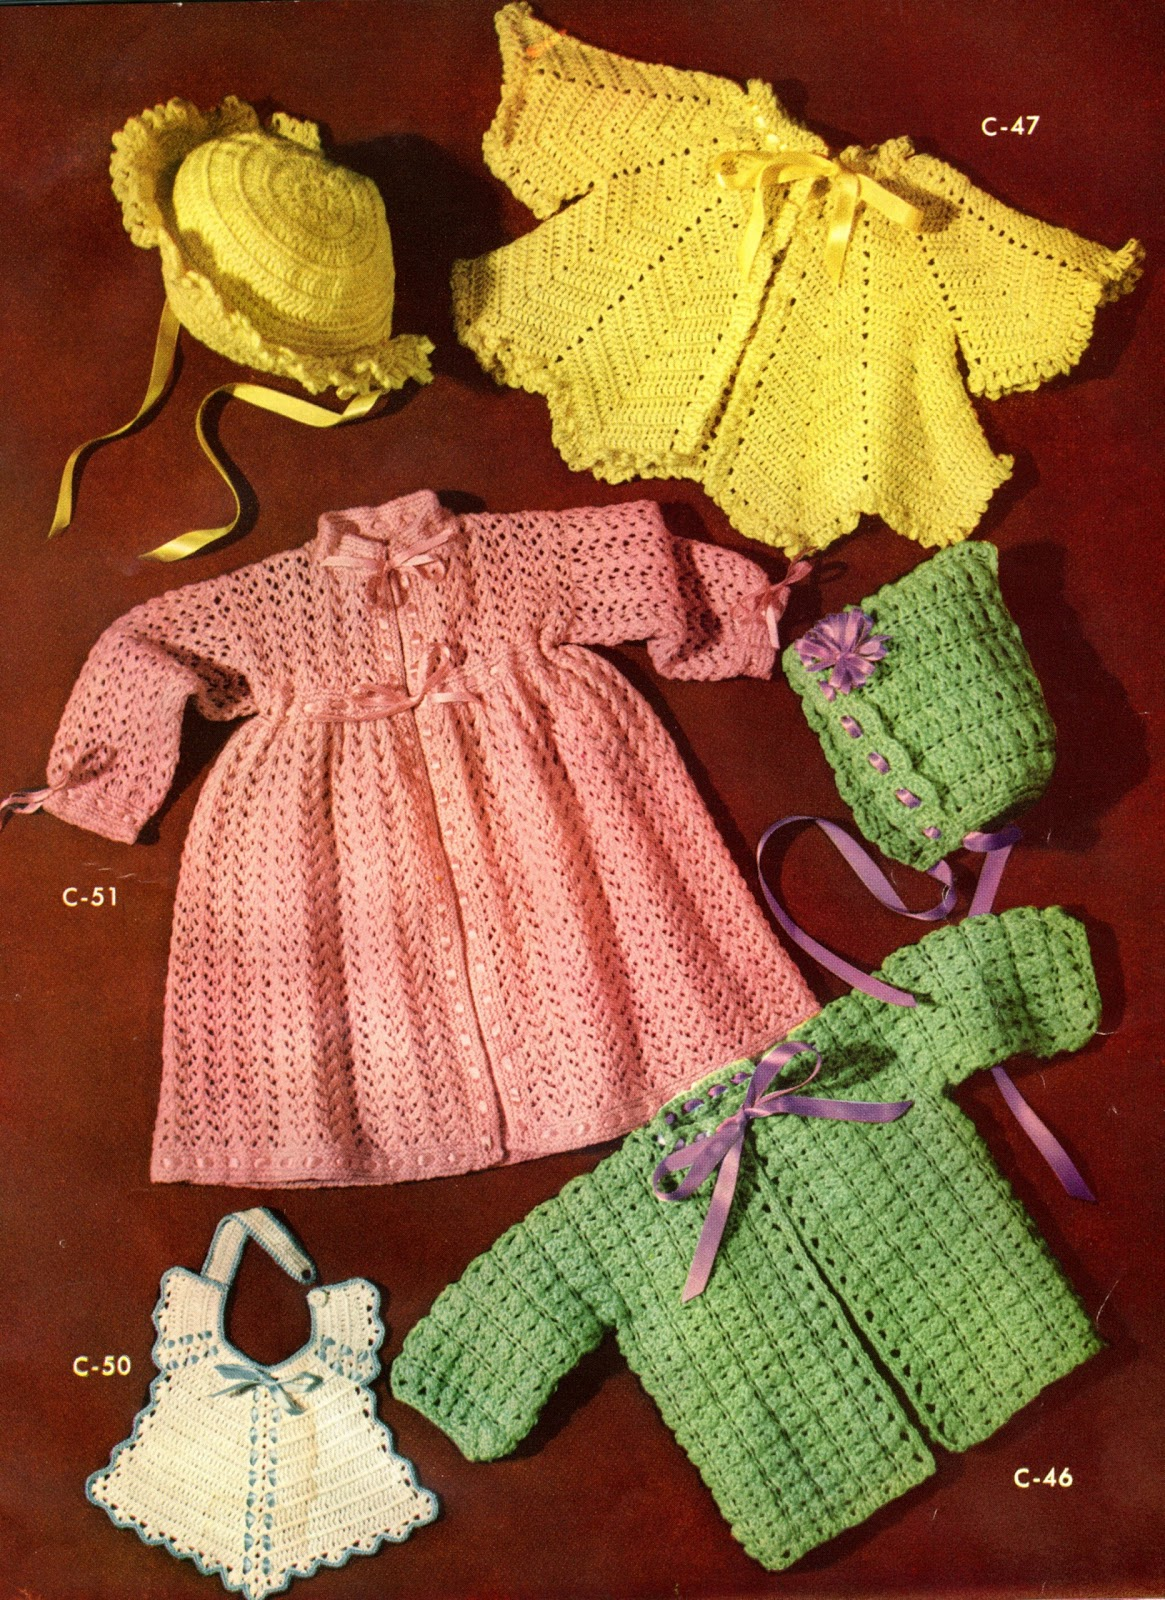 Antique Crochet Patterns : Crochet Designs Blog of Free Patterns: Great Vintage Crochet Pattern ...